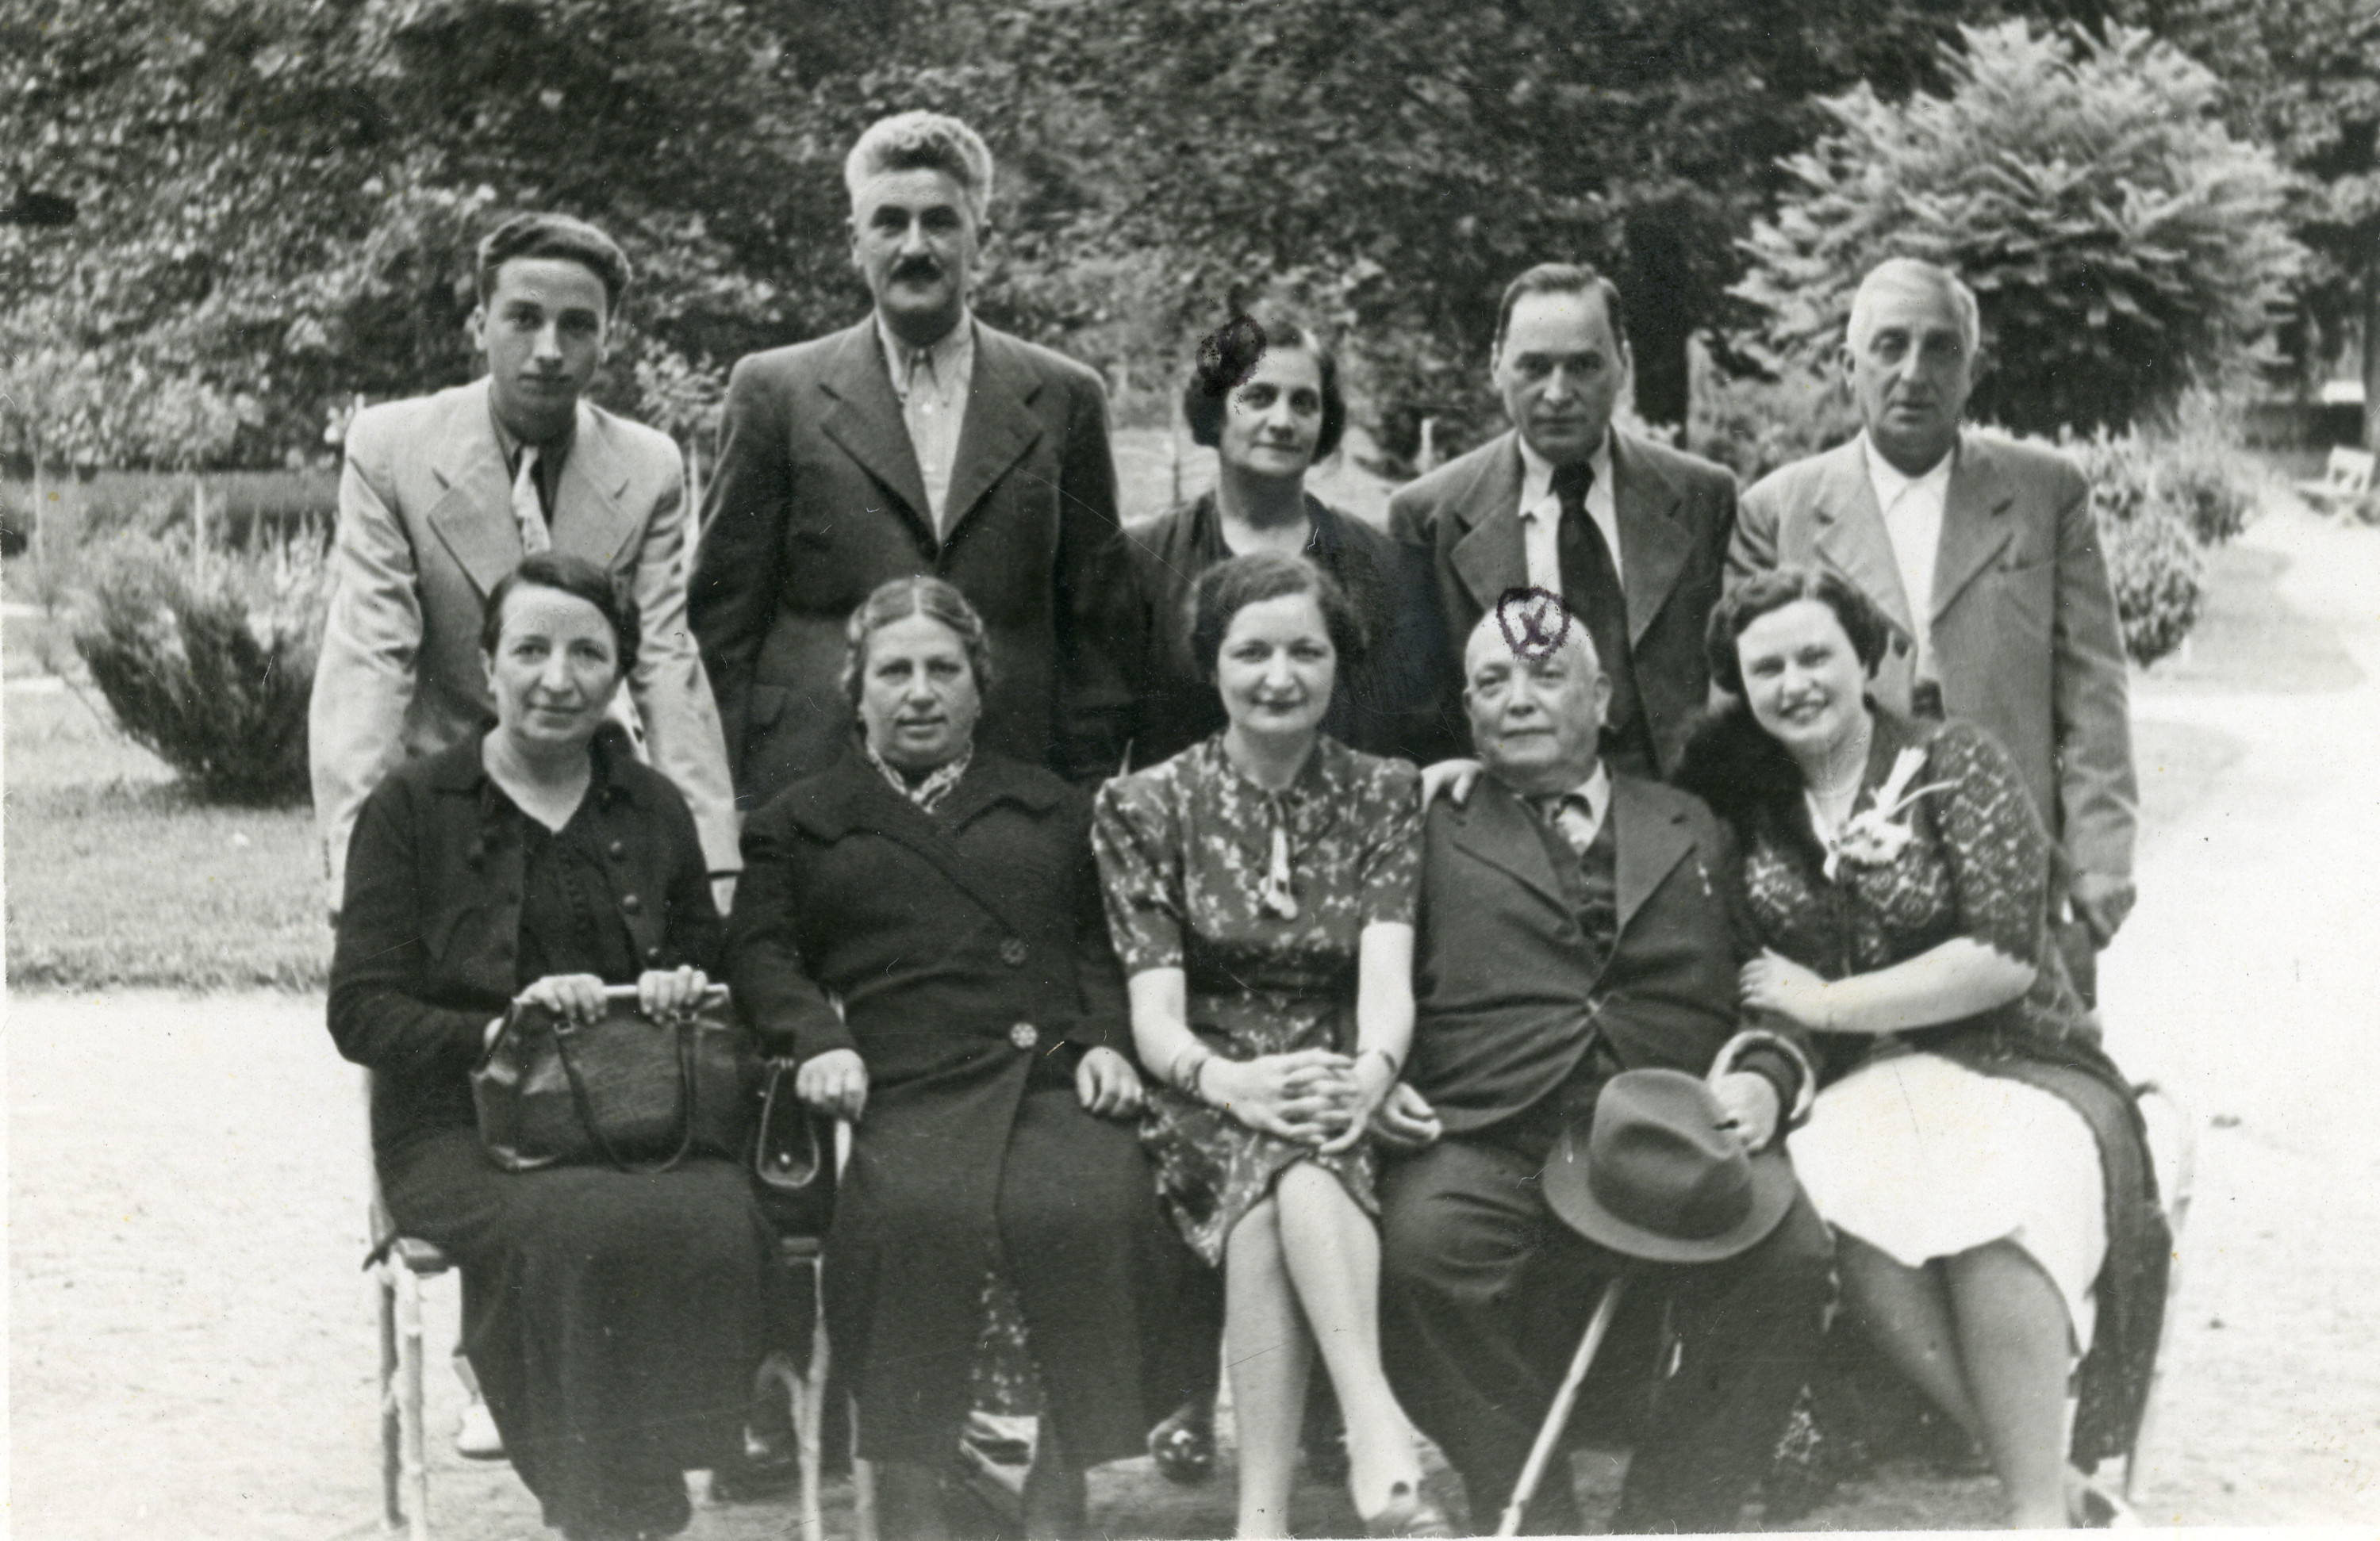 Group photograph of members of the Francesca (Fransevic) and Negrin families, probably in Skopje.   Among those pictured are Asher Francesca (front row, second from right) and his wife Esther (back row, middle), the grandparents of the donor.